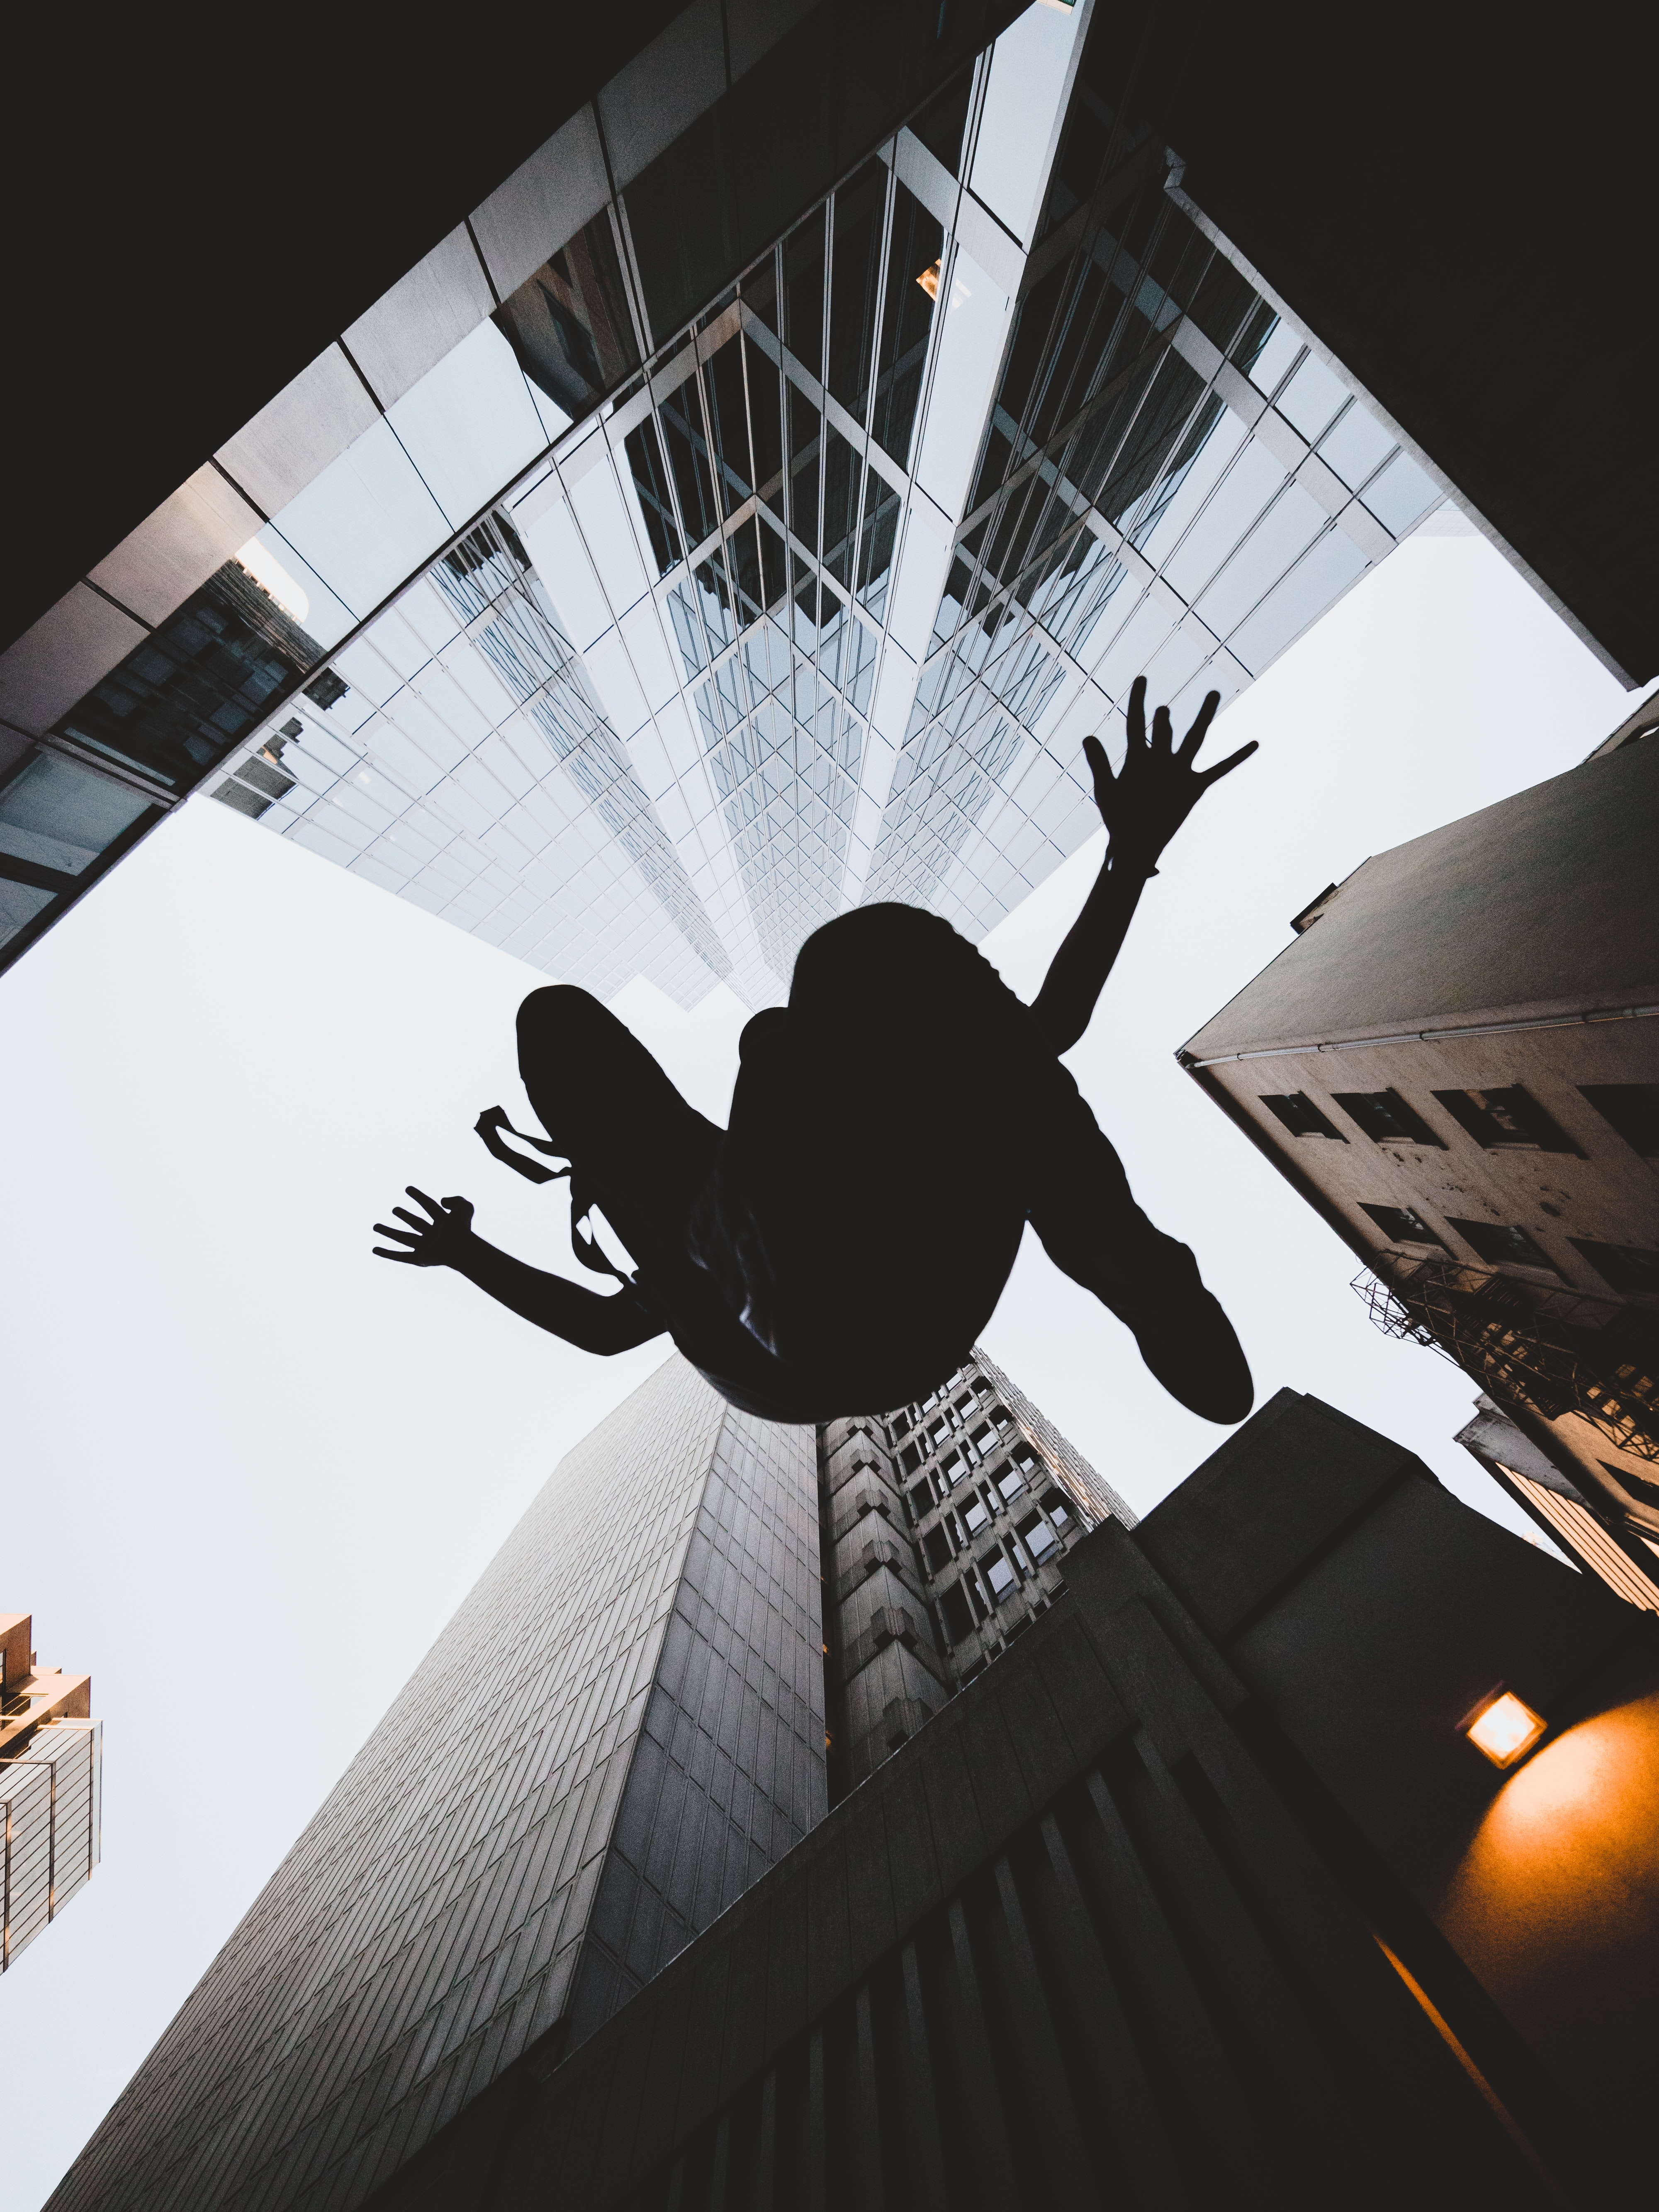 silhouette of person jumping during daytime